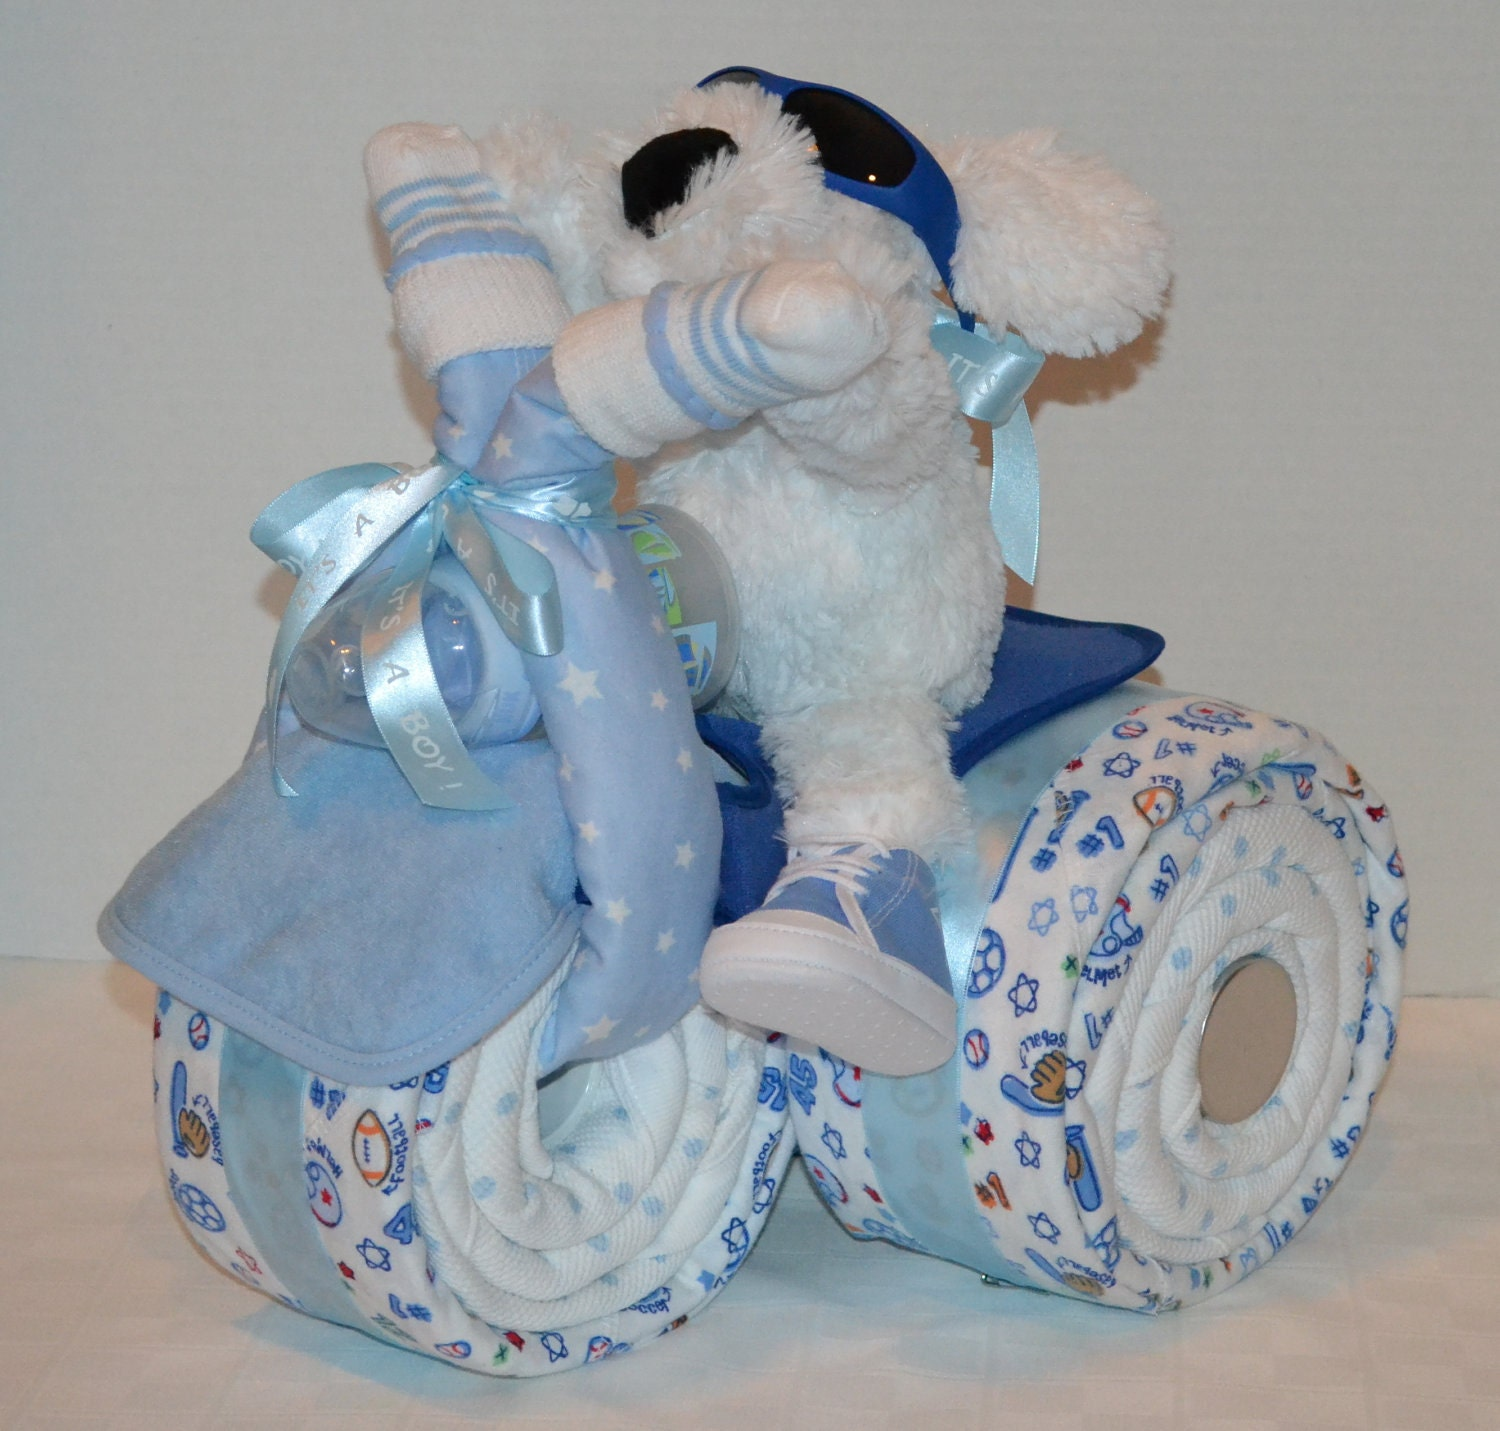 tricycle trike diaper cake baby shower gift sports theme